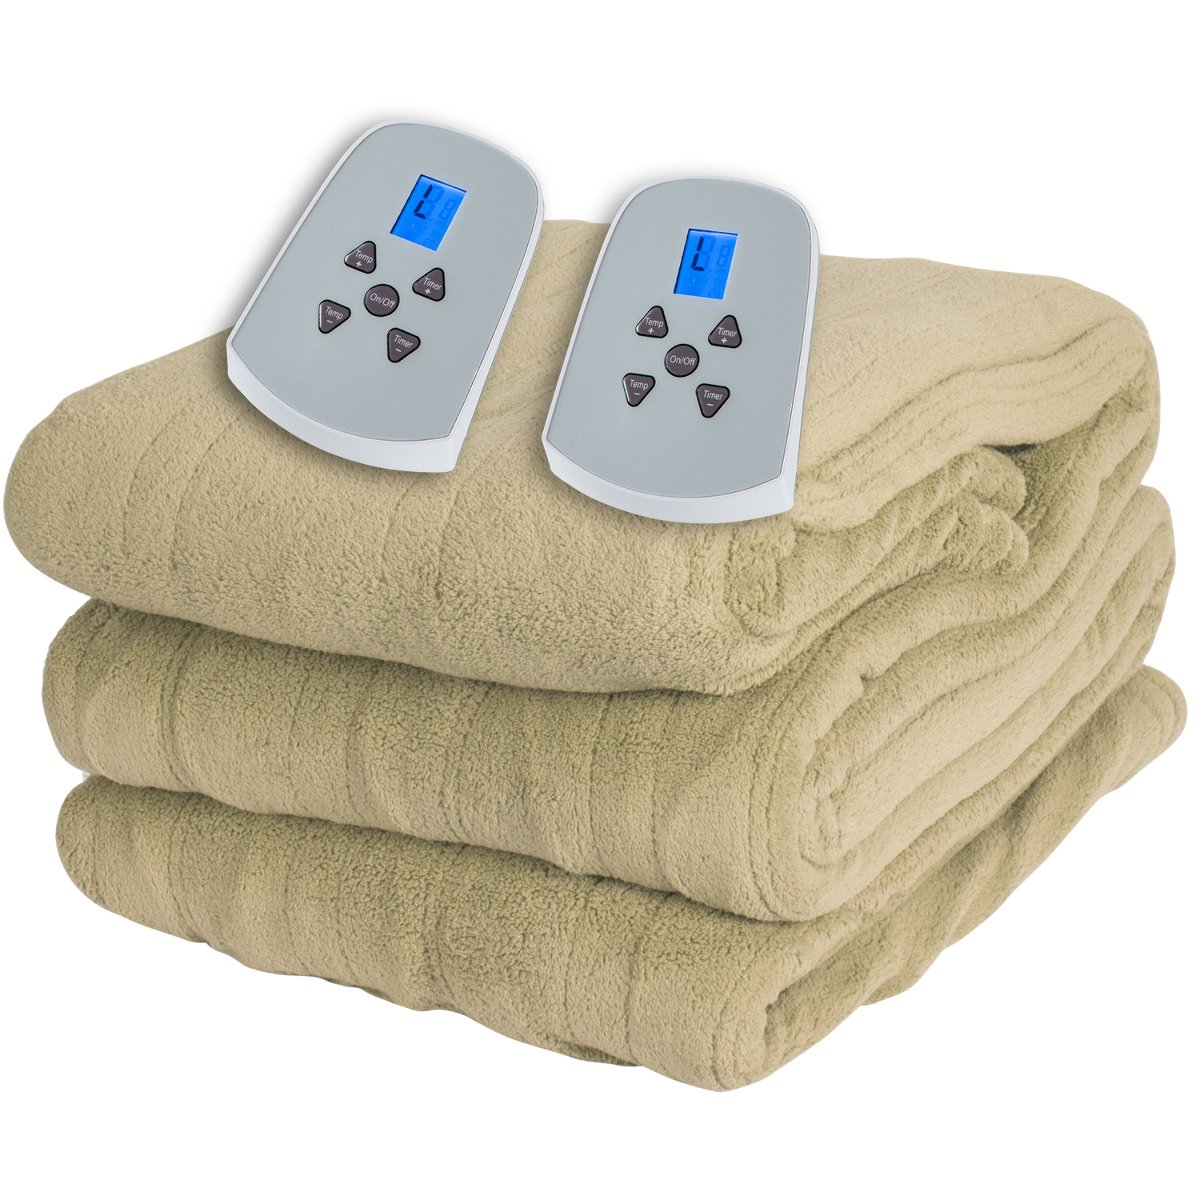 King Size Microplush Electric Heated Blanket with dual controllers, Beige by Westerly